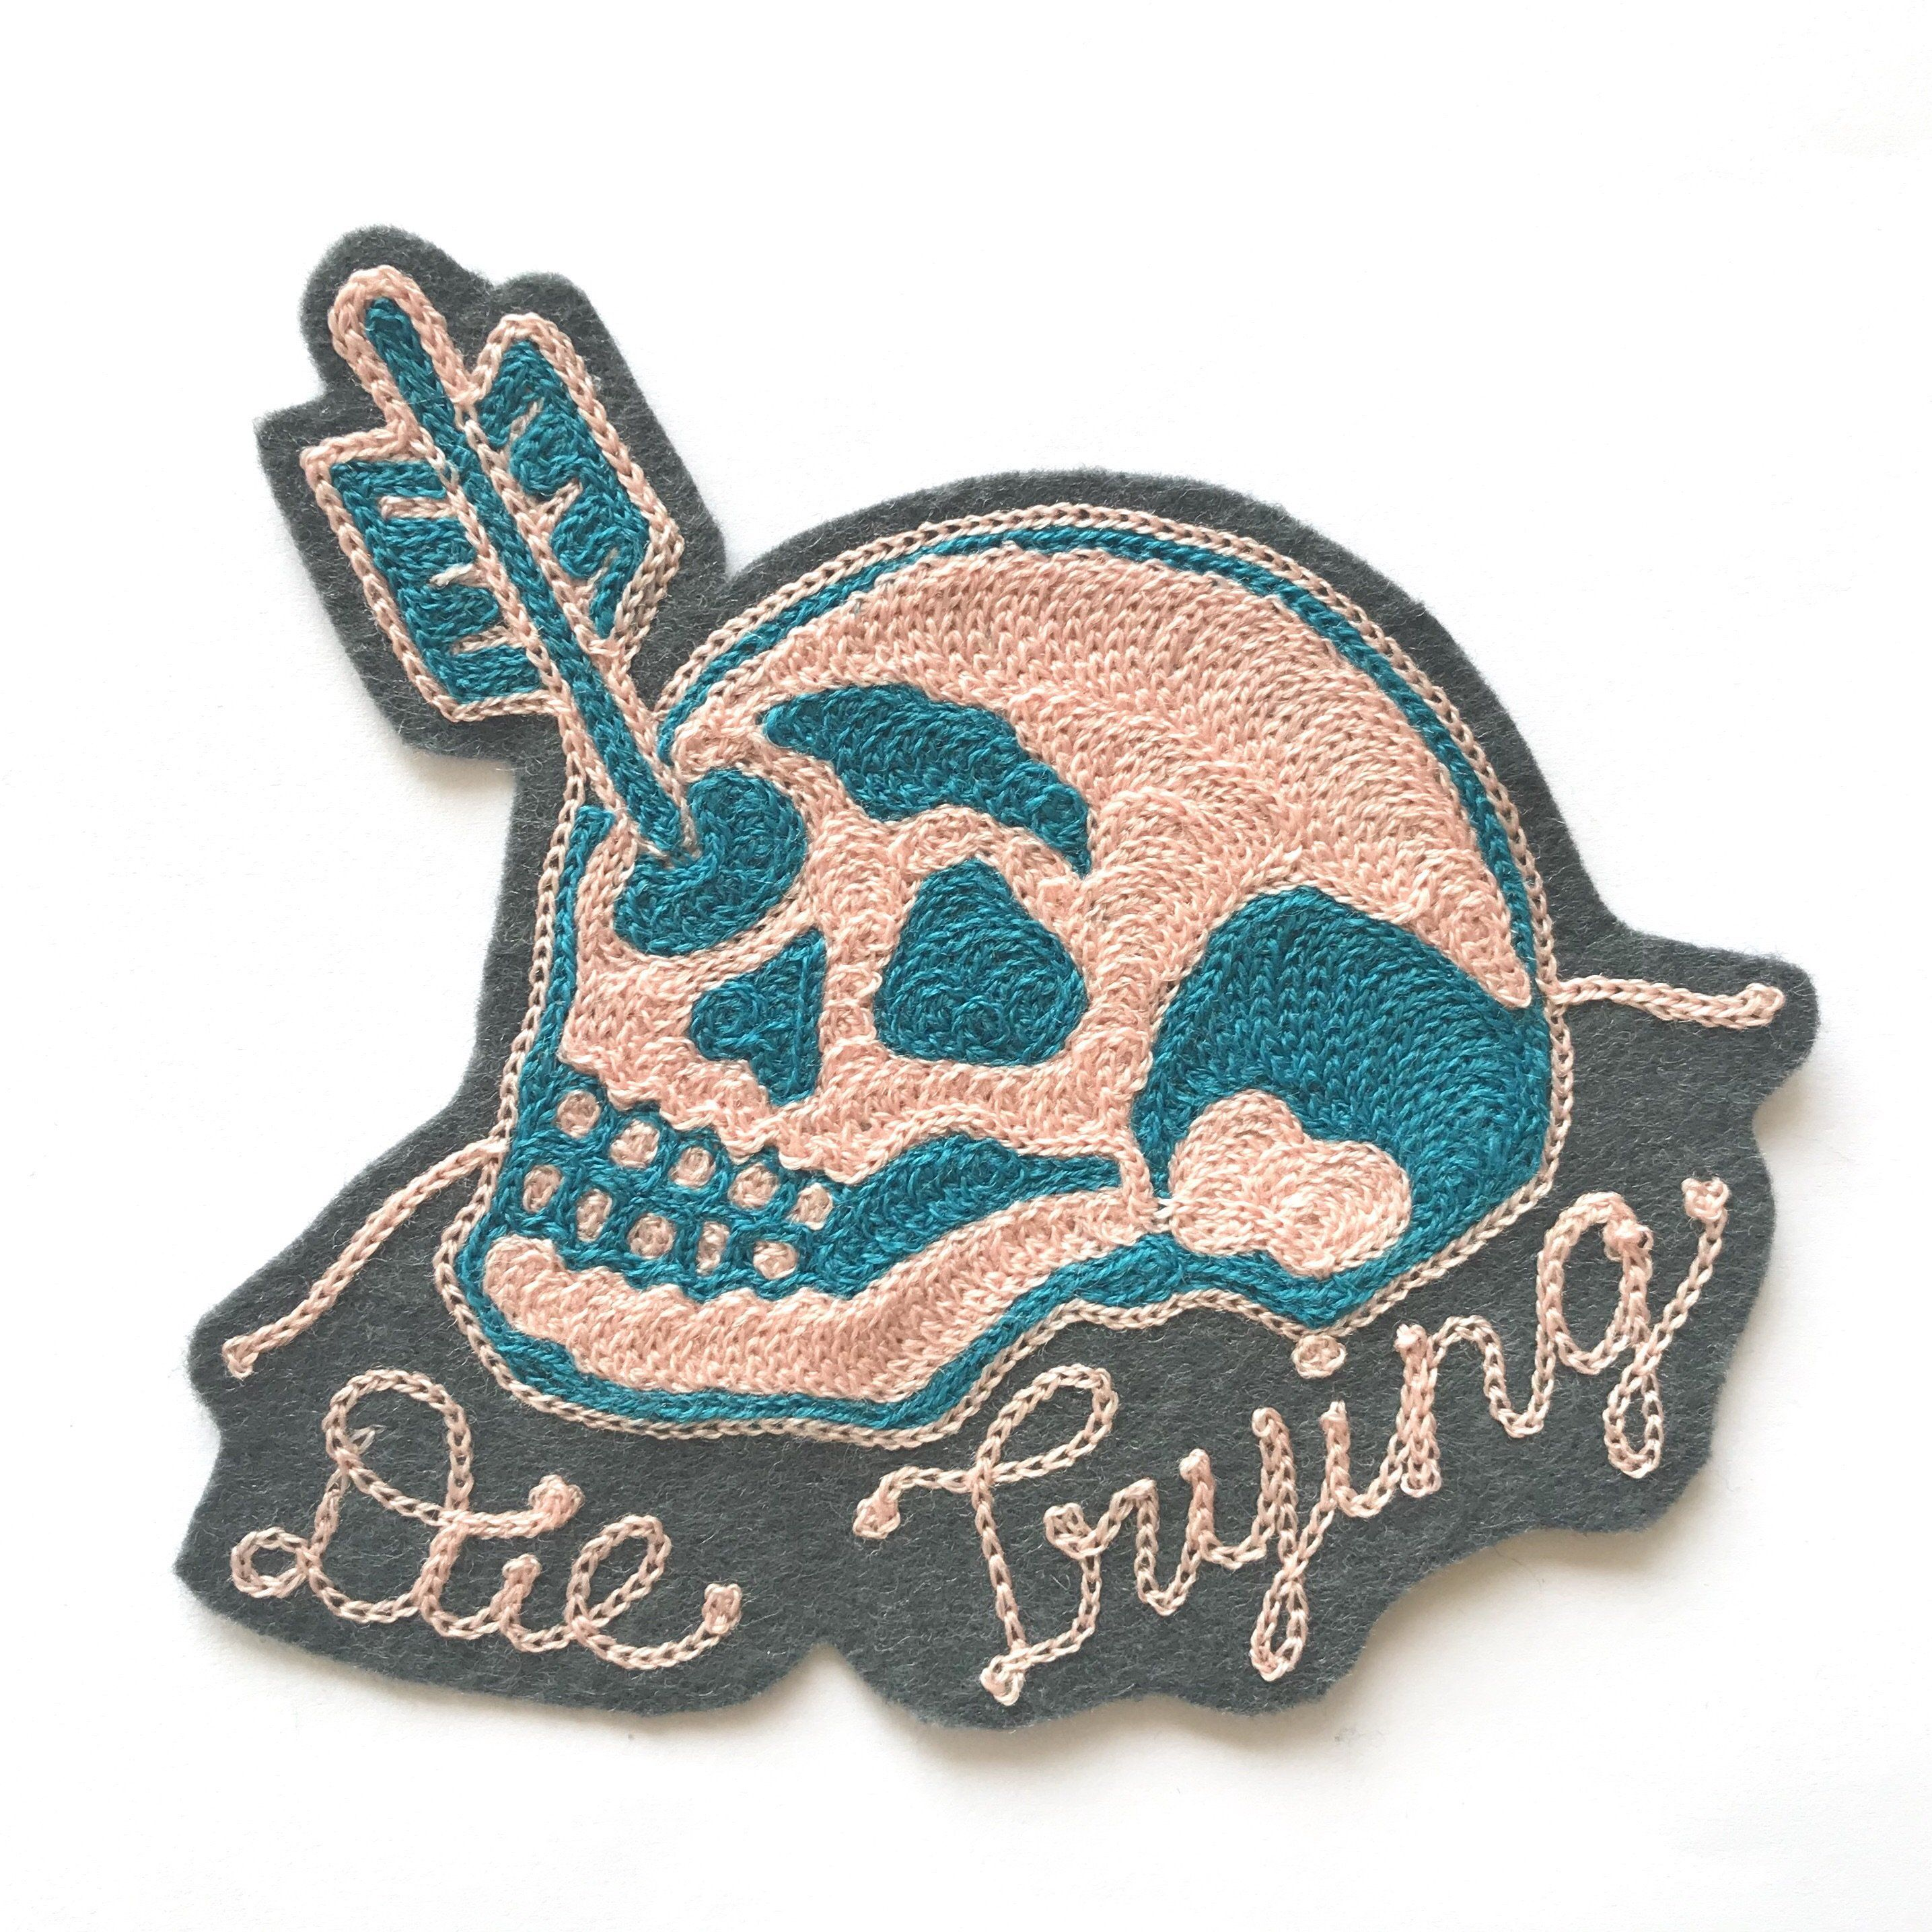 Skull Cross Gun Cowbo Patch Iron On Sew On Embroidered  Bag Badge Applique Patch